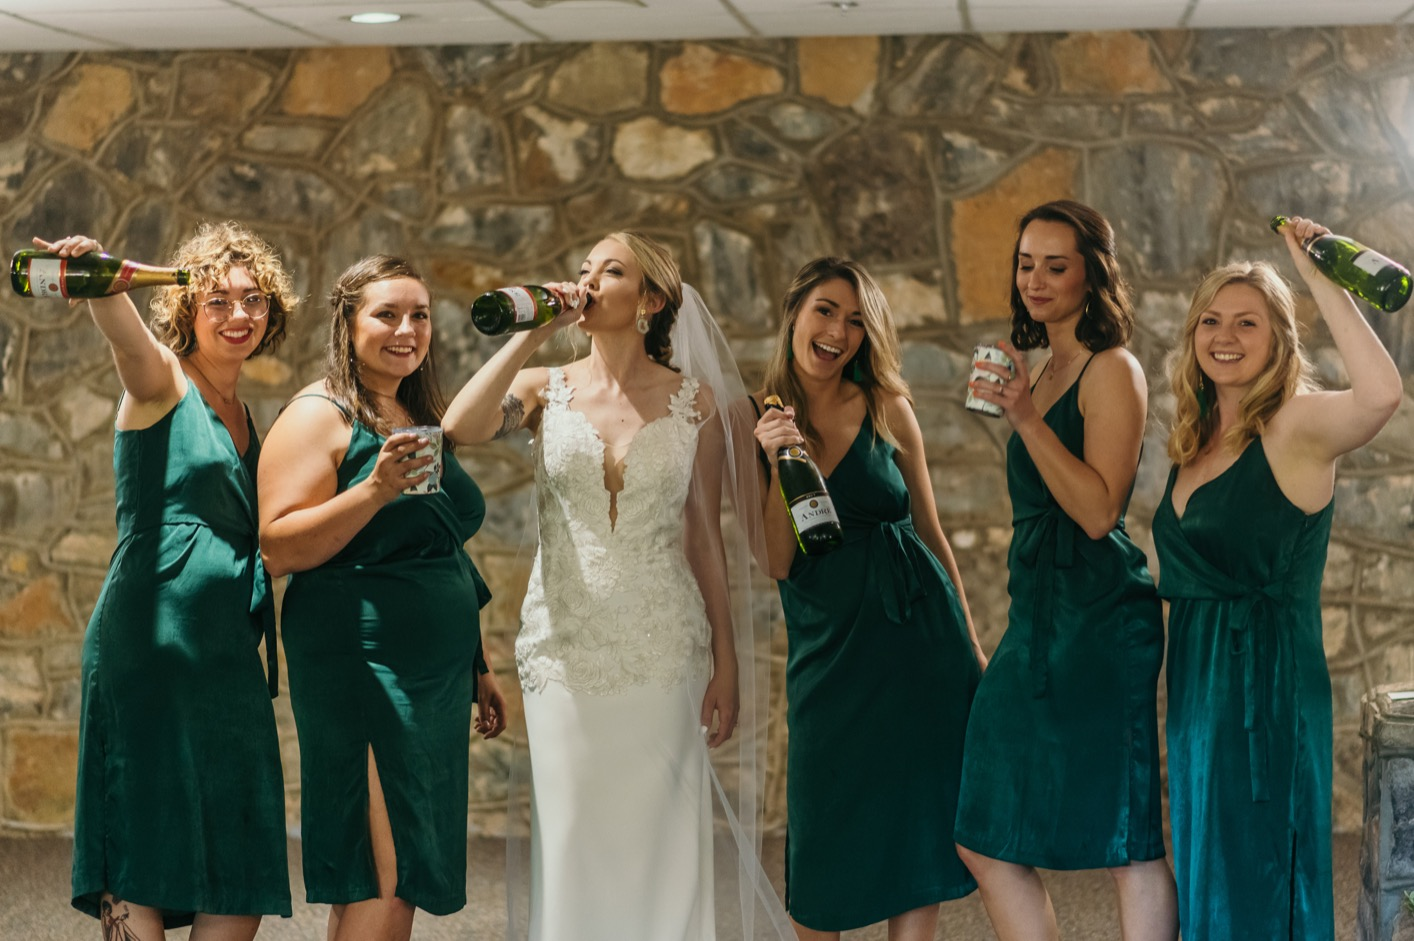 006_Photographers_Photography_Georgia_Weddings_Bridesmaids_Atlanta_Wedding.jpg